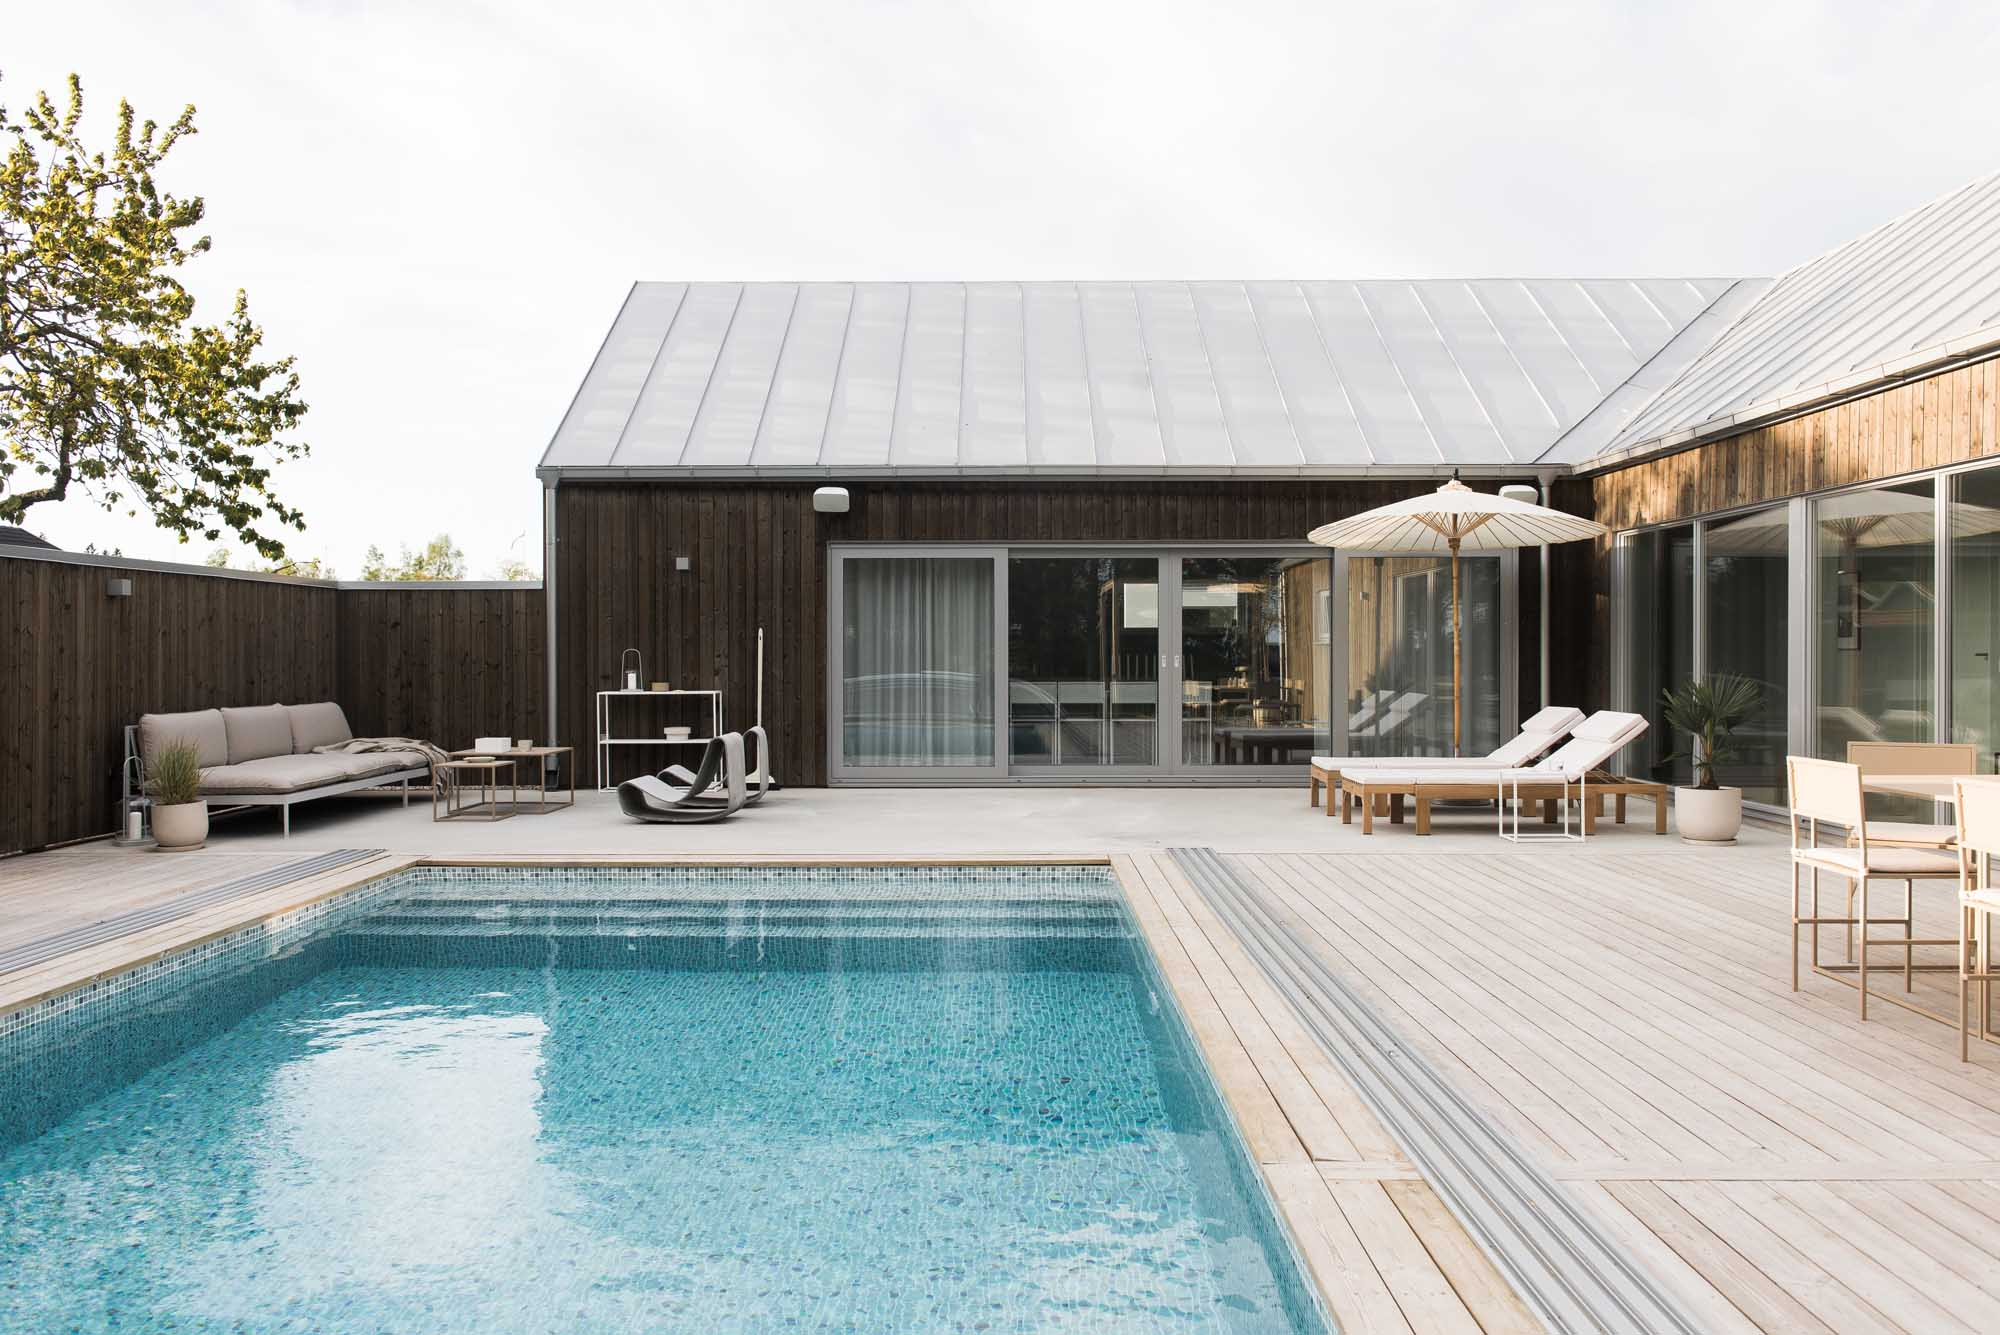 Home tour | A minimalist self-build in southern Sweden | These Four Walls blog